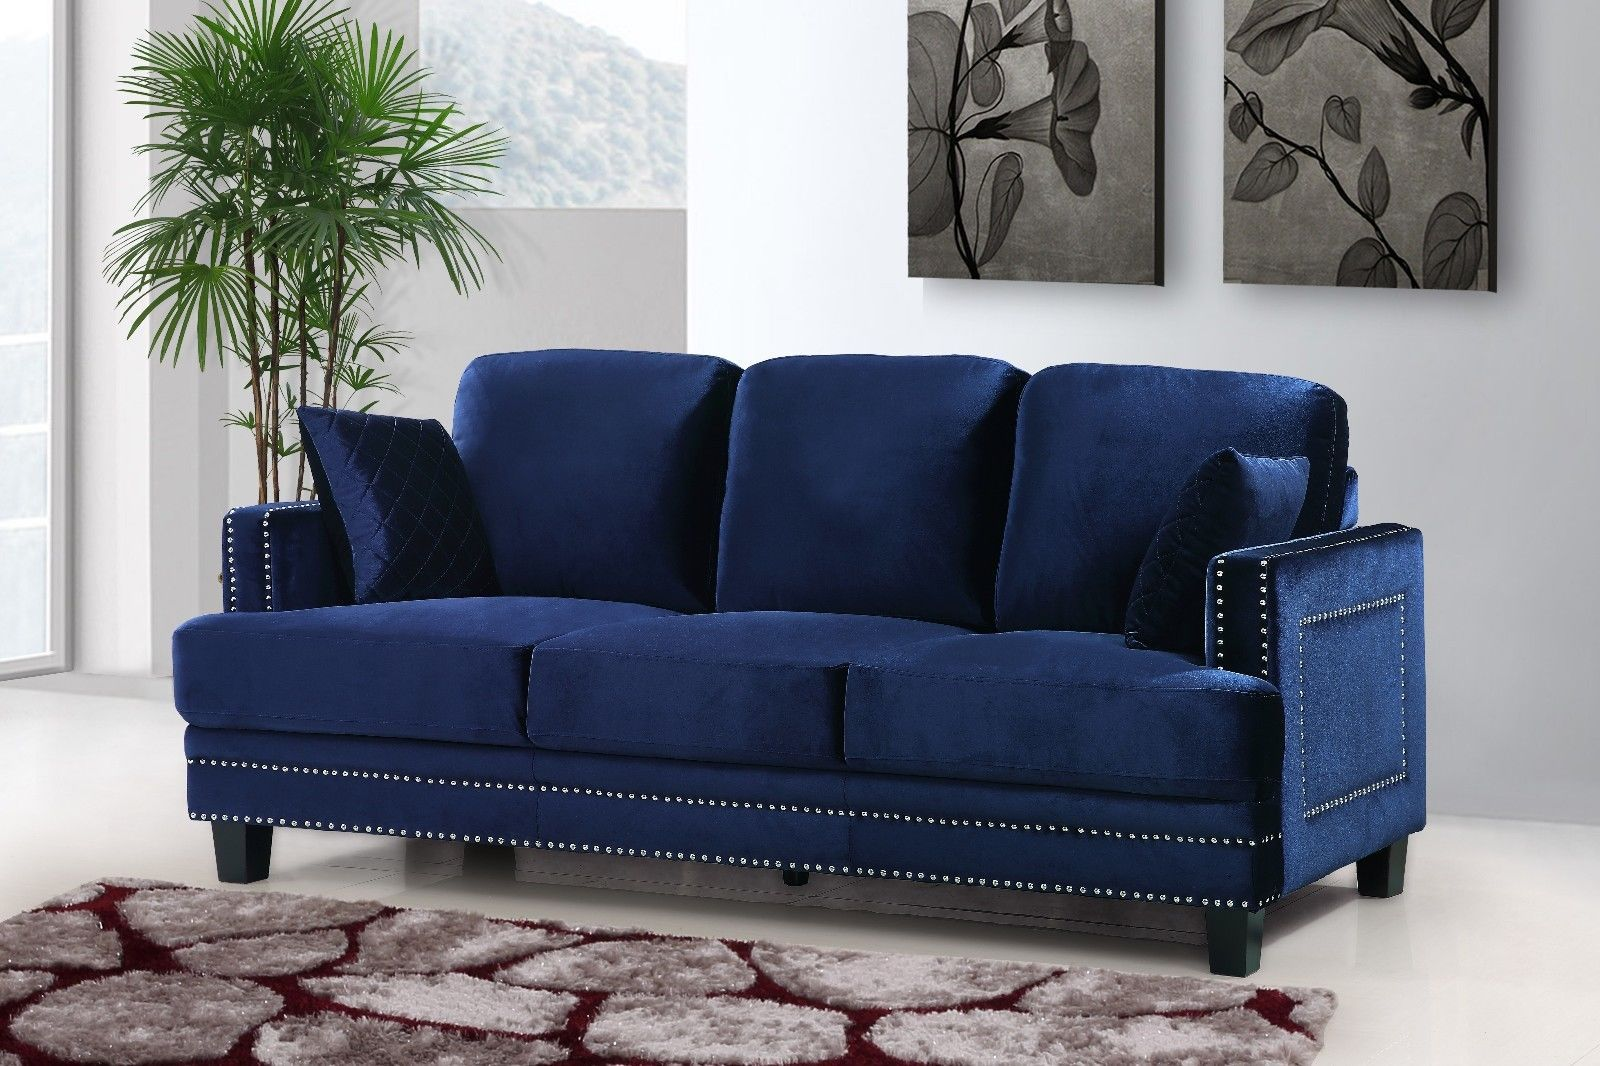 Meridian 655 Navy Velvet Leather Living Room Sofa Set 3pc.  Contemporary Style